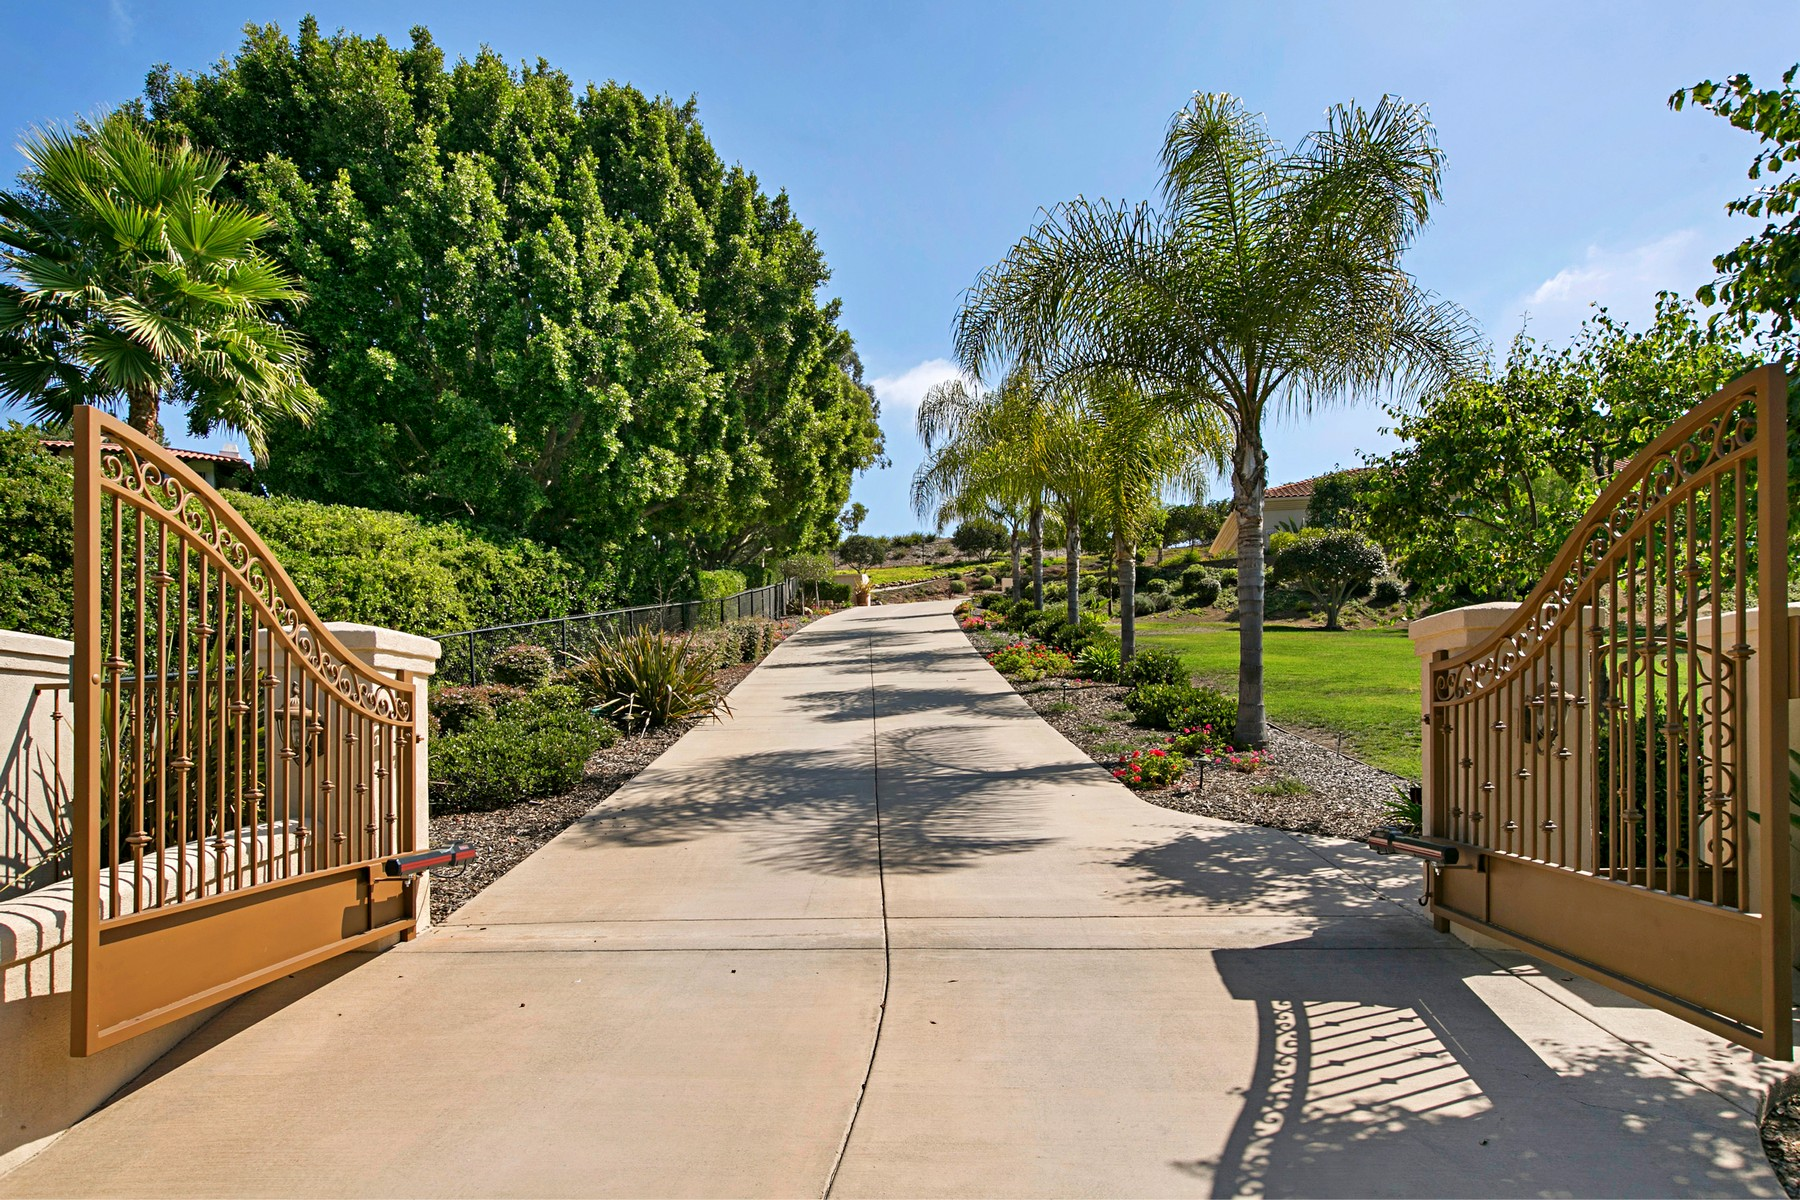 Single Family Home for Sale at 17206 El Caporal Rancho Santa Fe, California 92067 United States